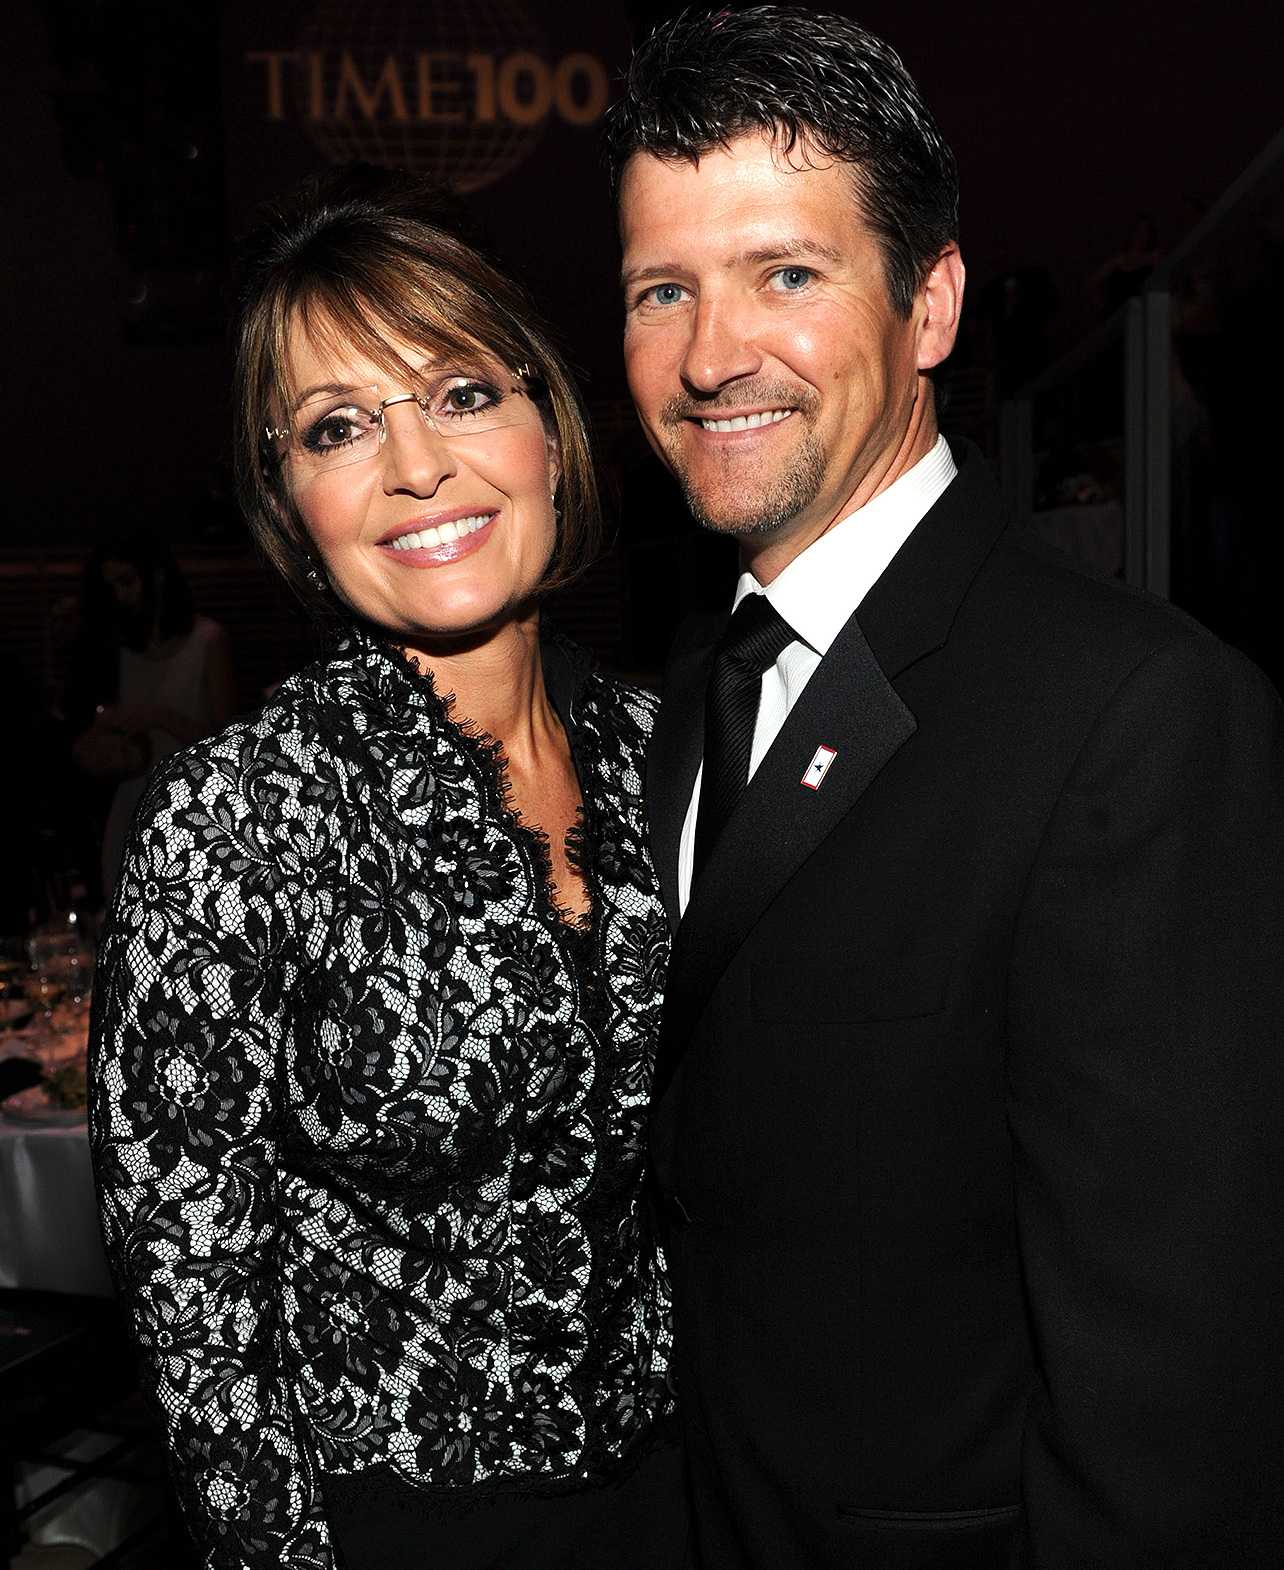 Sarah Palin Husband